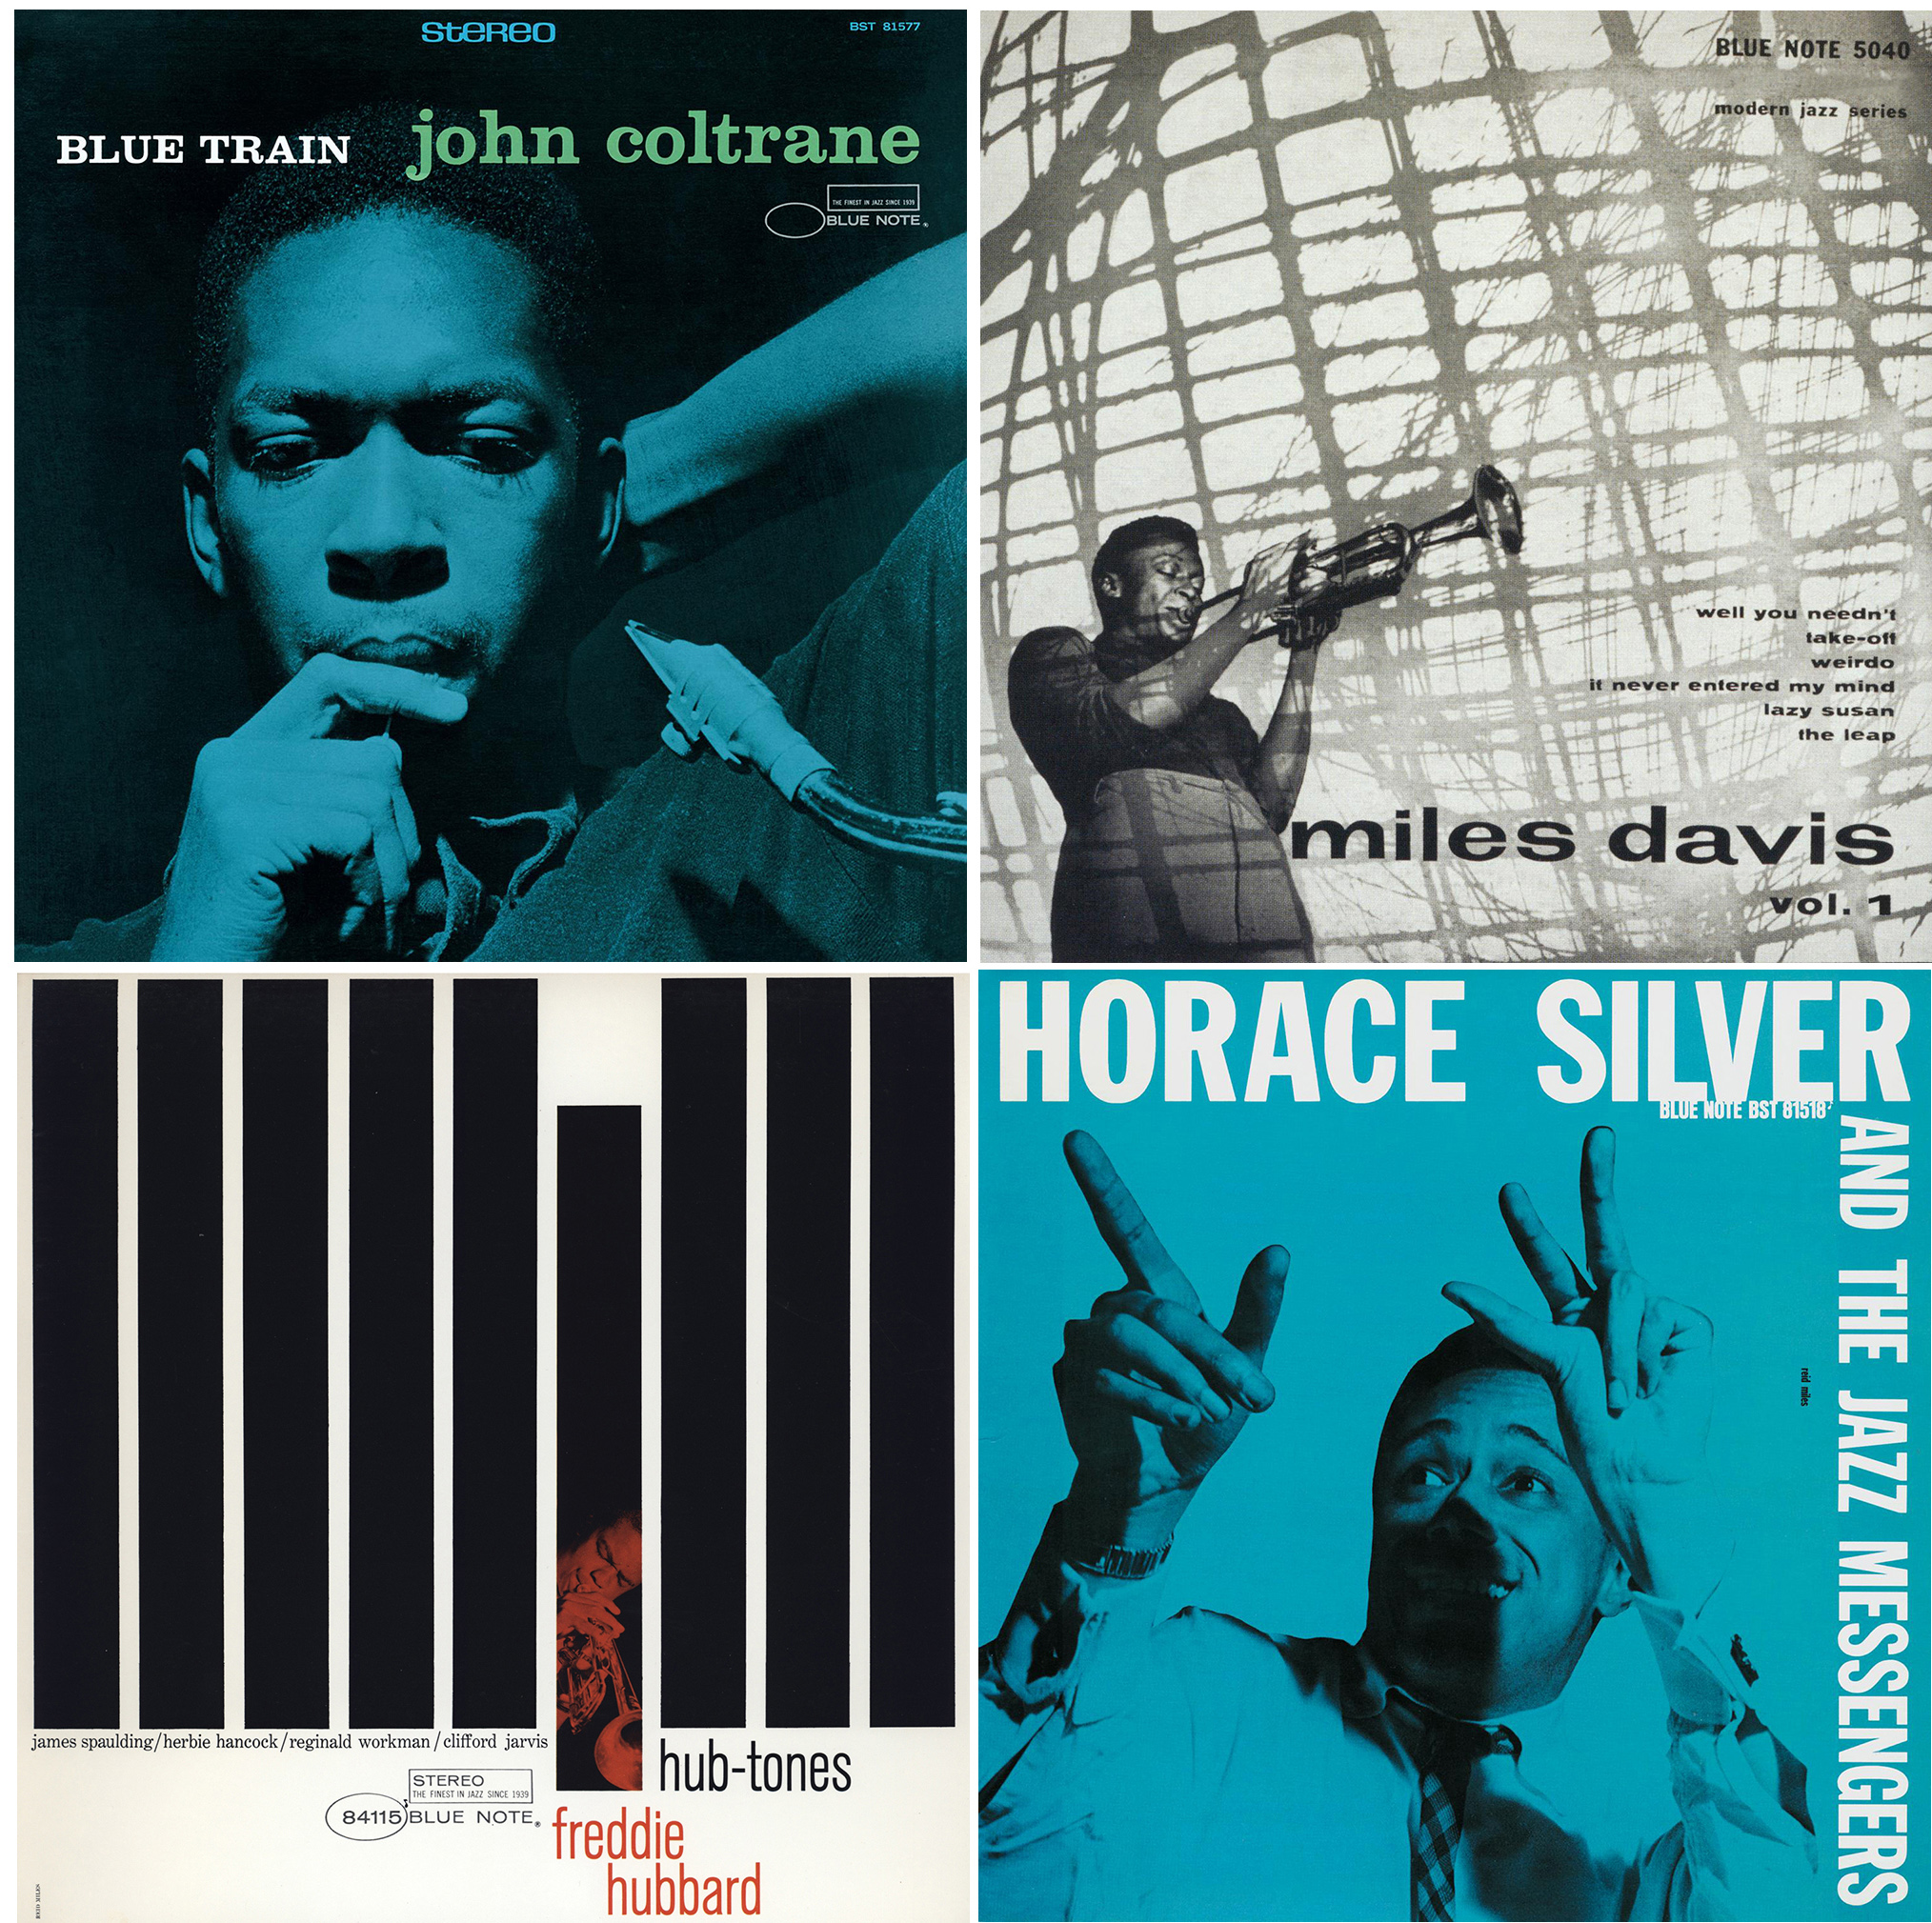 Blue Note Album Covers